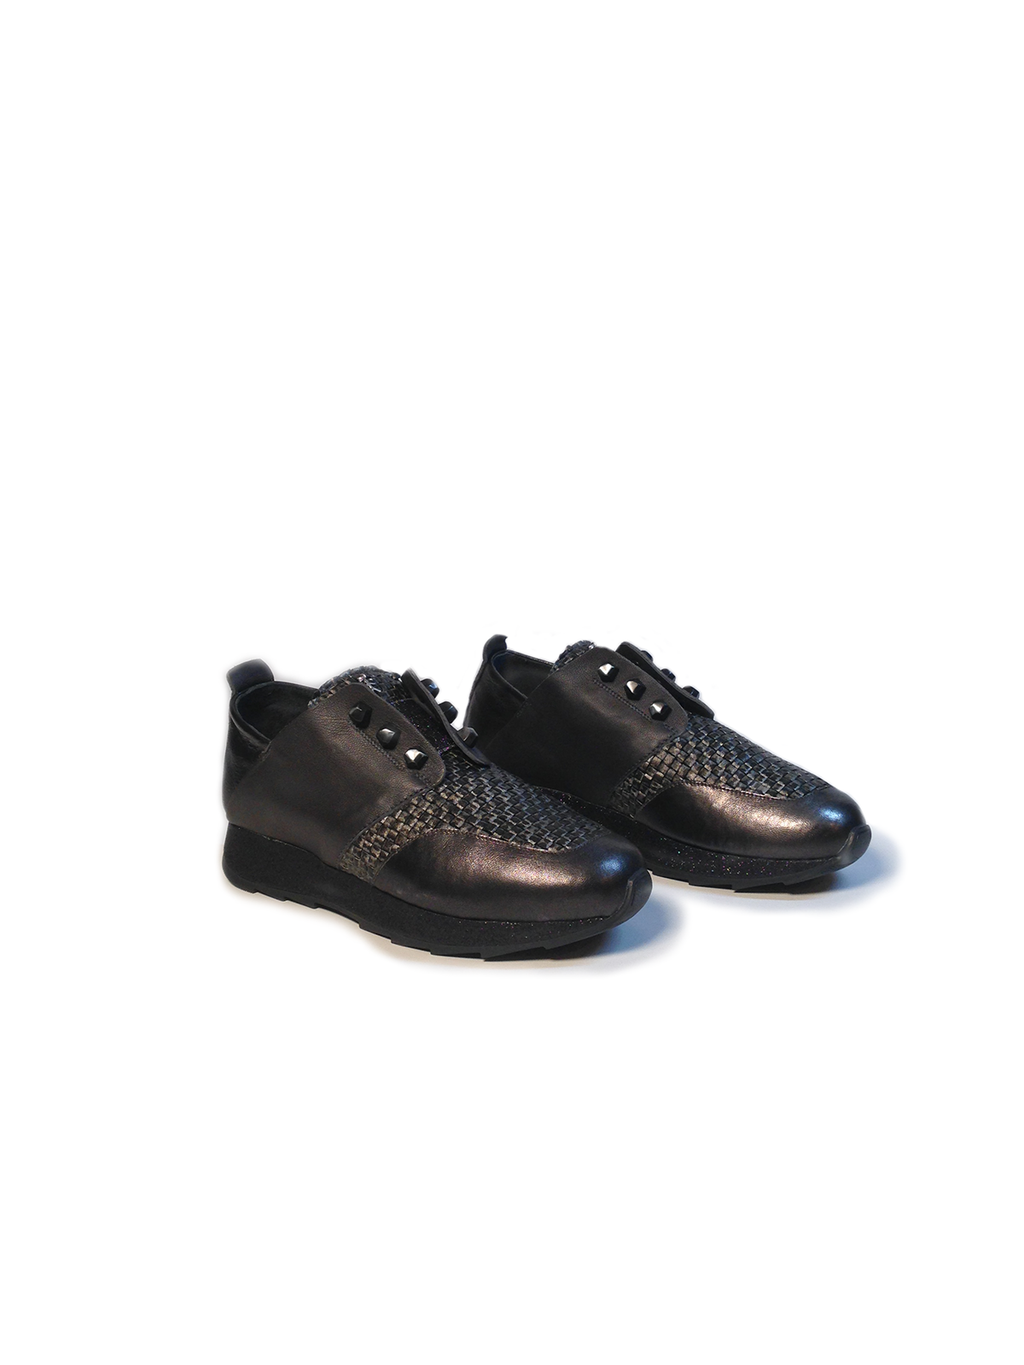 Henry Beguelin Sneaker Intreccio Metallic Black